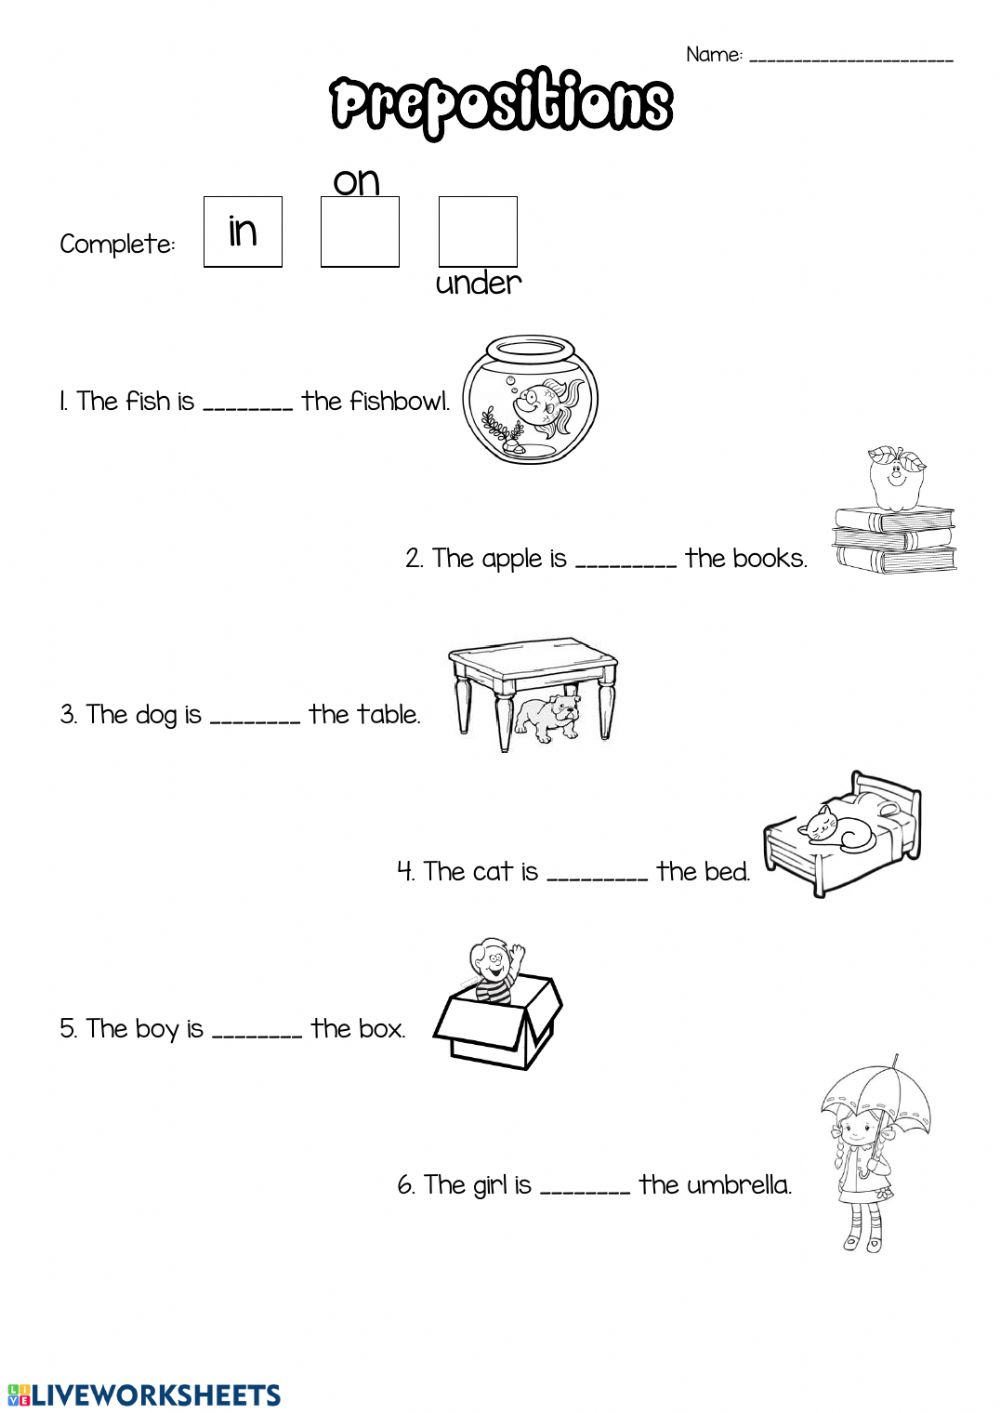 medium resolution of Prepositions activity for 1st grade